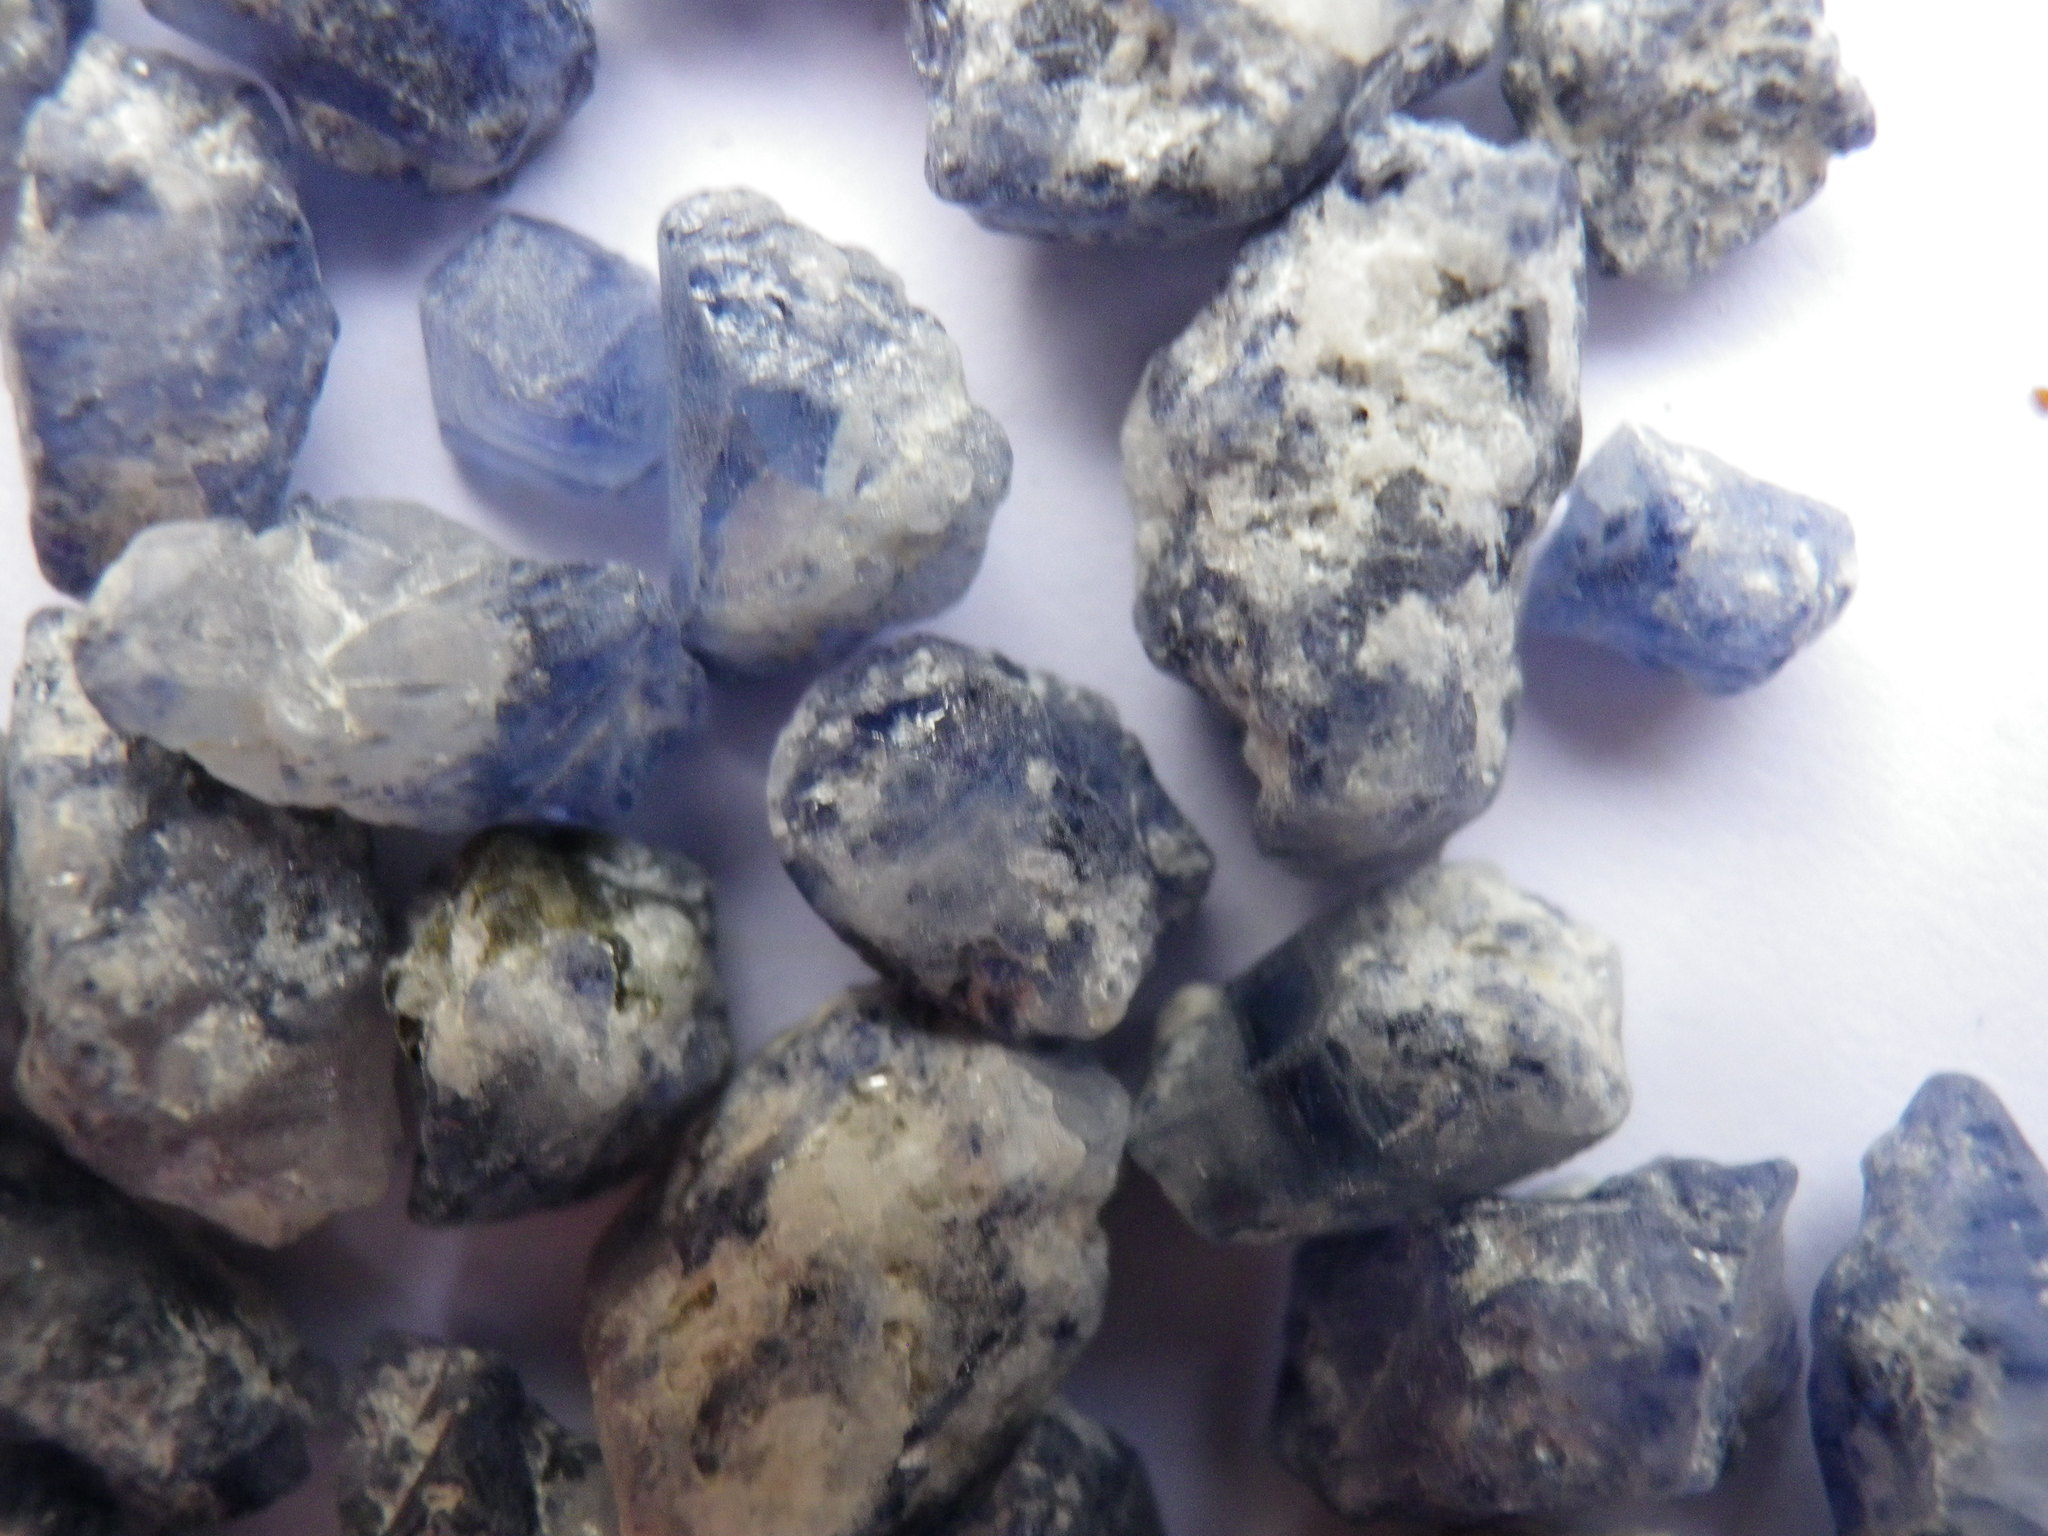 Jan 2019Where can I get sapphires analysed for provenance